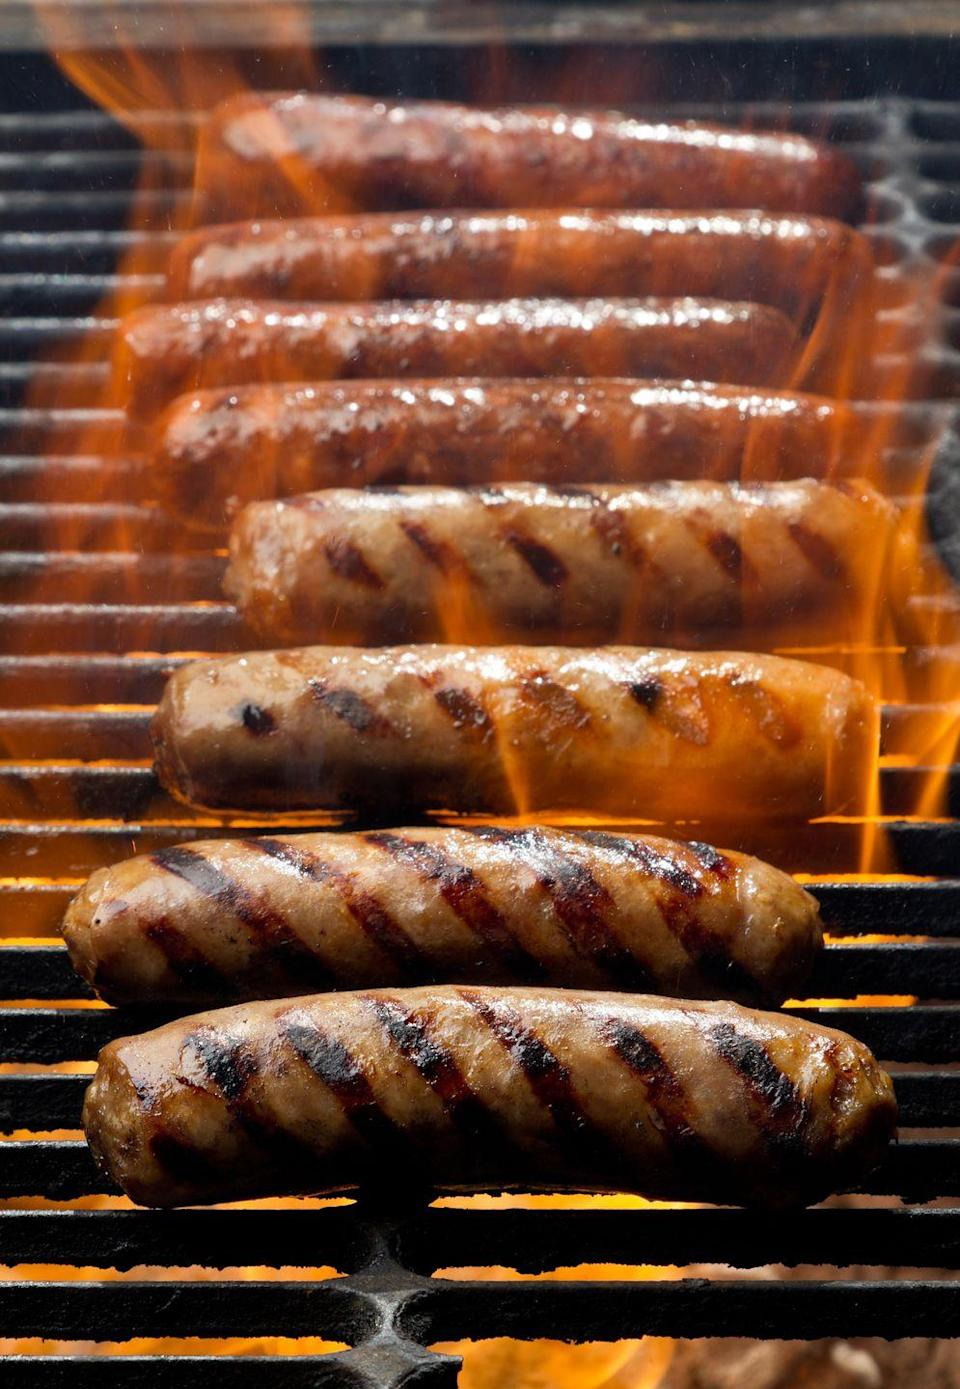 """<p>Bratwurst is taken very seriously in this state. The <a href=""""https://www.bratfest.com/"""" rel=""""nofollow noopener"""" target=""""_blank"""" data-ylk=""""slk:&quot;World's Largest Brat Fest&quot;"""" class=""""link rapid-noclick-resp"""">""""World's Largest Brat Fest""""</a> takes place in Madison every Memorial Day weekend, and Sheboygan has the honor of being the """"Bratwurst Capitol of the World."""" </p><p><strong>RELATED: </strong><a href=""""https://www.goodhousekeeping.com/food-recipes/g413/great-grilling-recipes/"""" rel=""""nofollow noopener"""" target=""""_blank"""" data-ylk=""""slk:60+ Insanely Delicious Grilling Recipes to Try ASAP"""" class=""""link rapid-noclick-resp"""">60+ Insanely Delicious Grilling Recipes to Try ASAP</a></p>"""